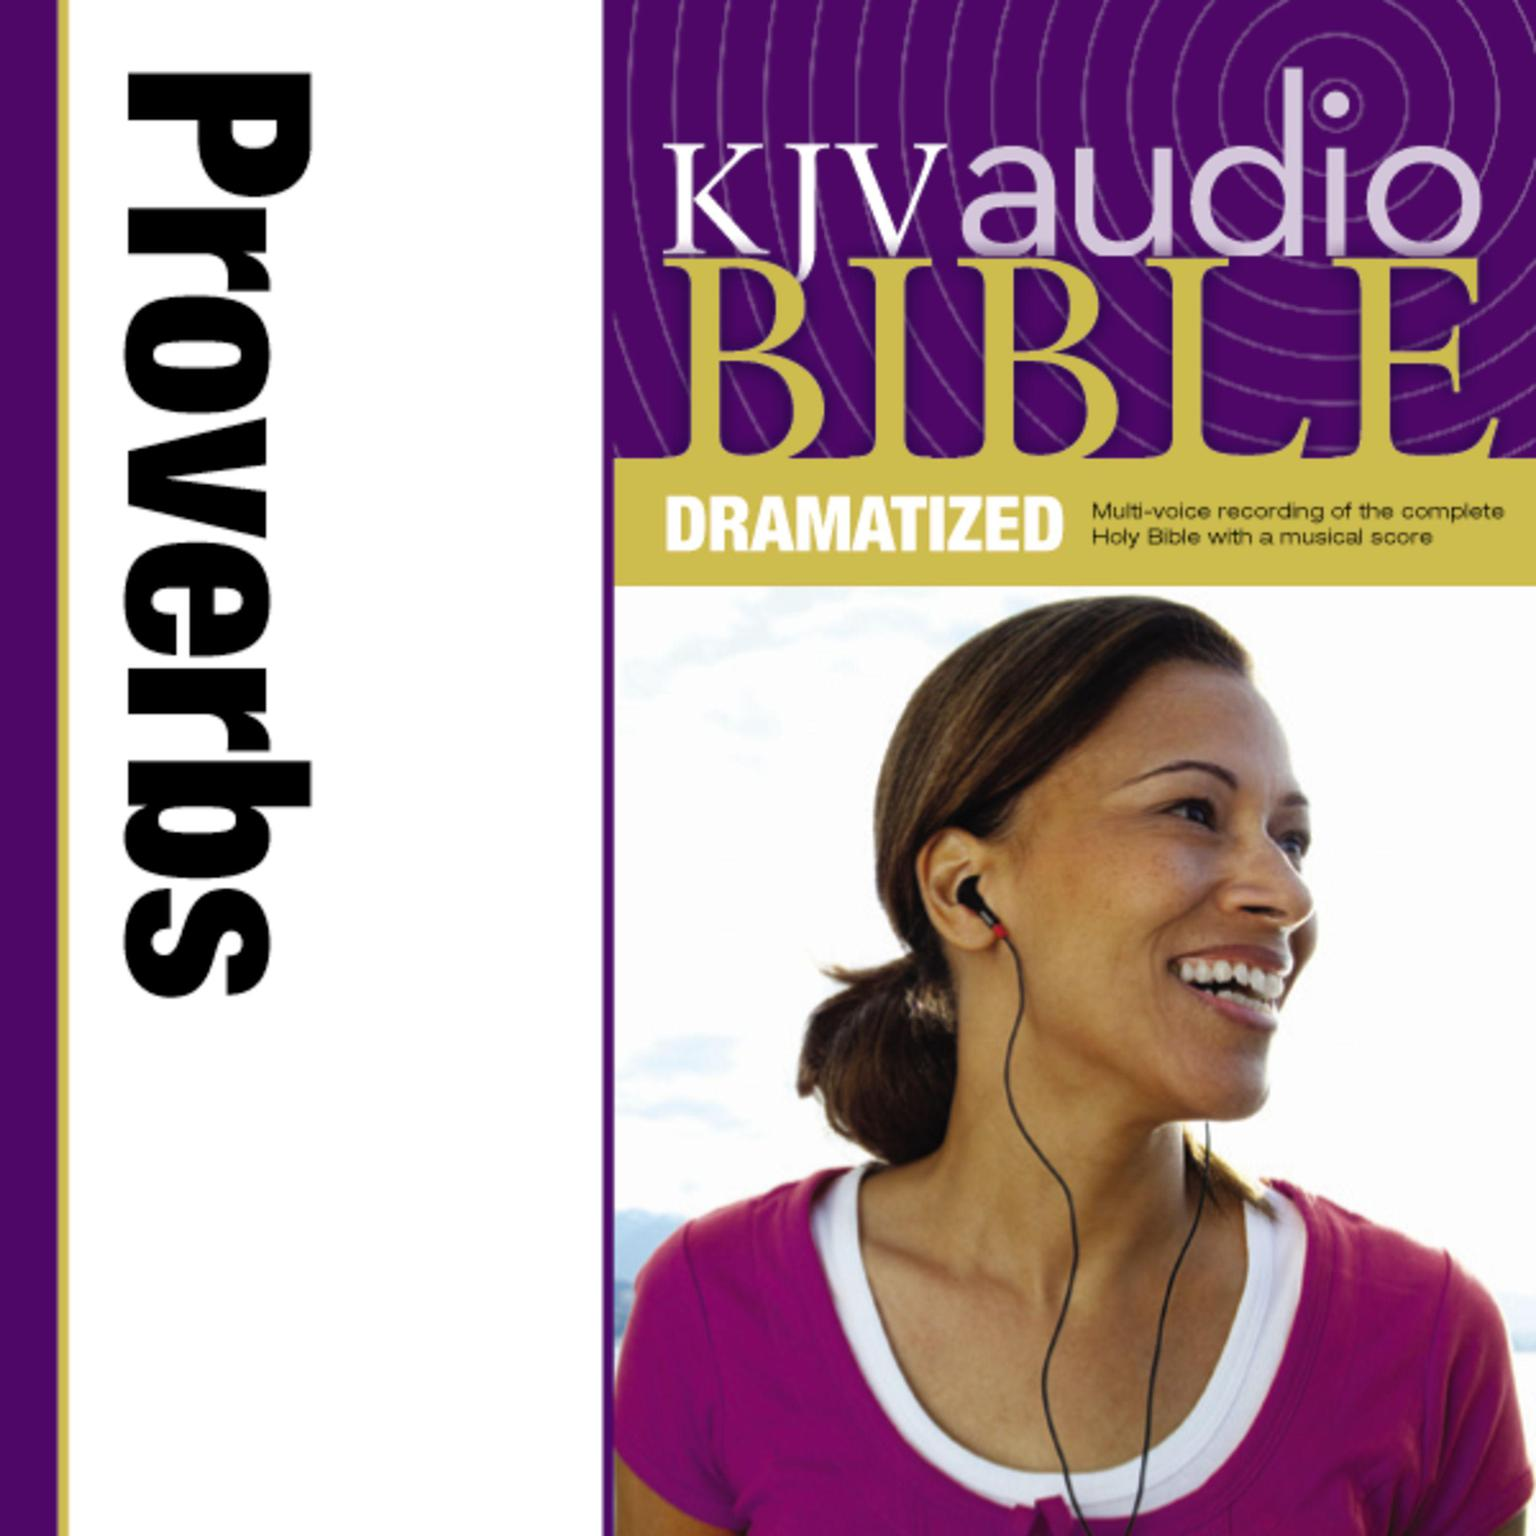 Printable KJV, Audio Bible, Dramatized: Proverbs, Audio Download Audiobook Cover Art